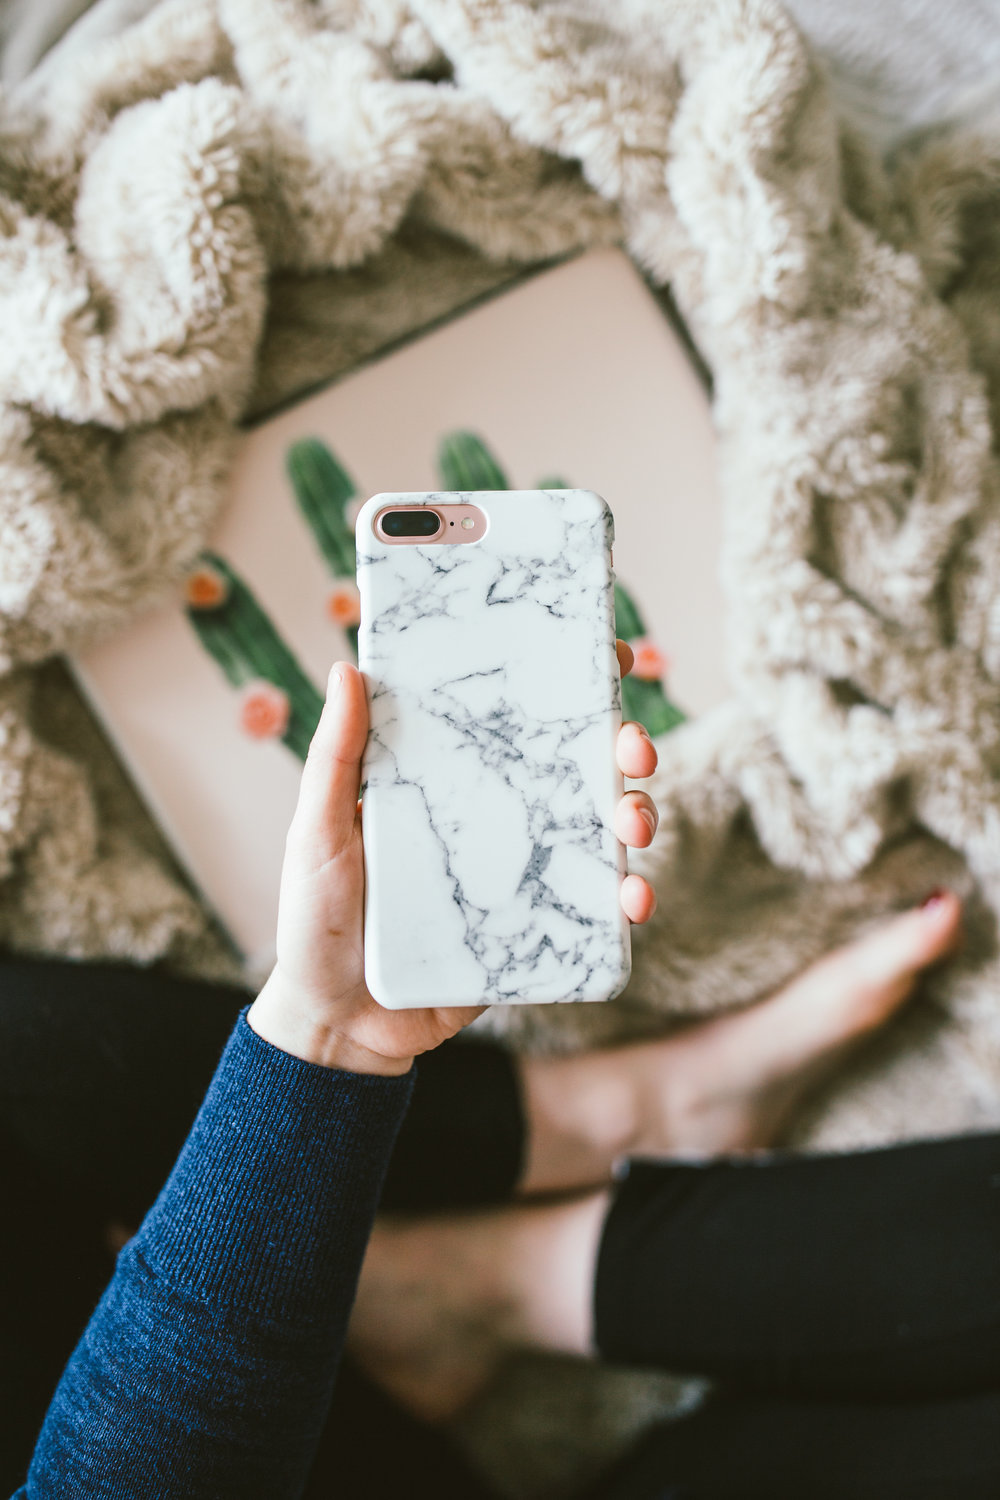 photo // bridget burnett photography  Thank you CaseApp for gifting me these fun cases!